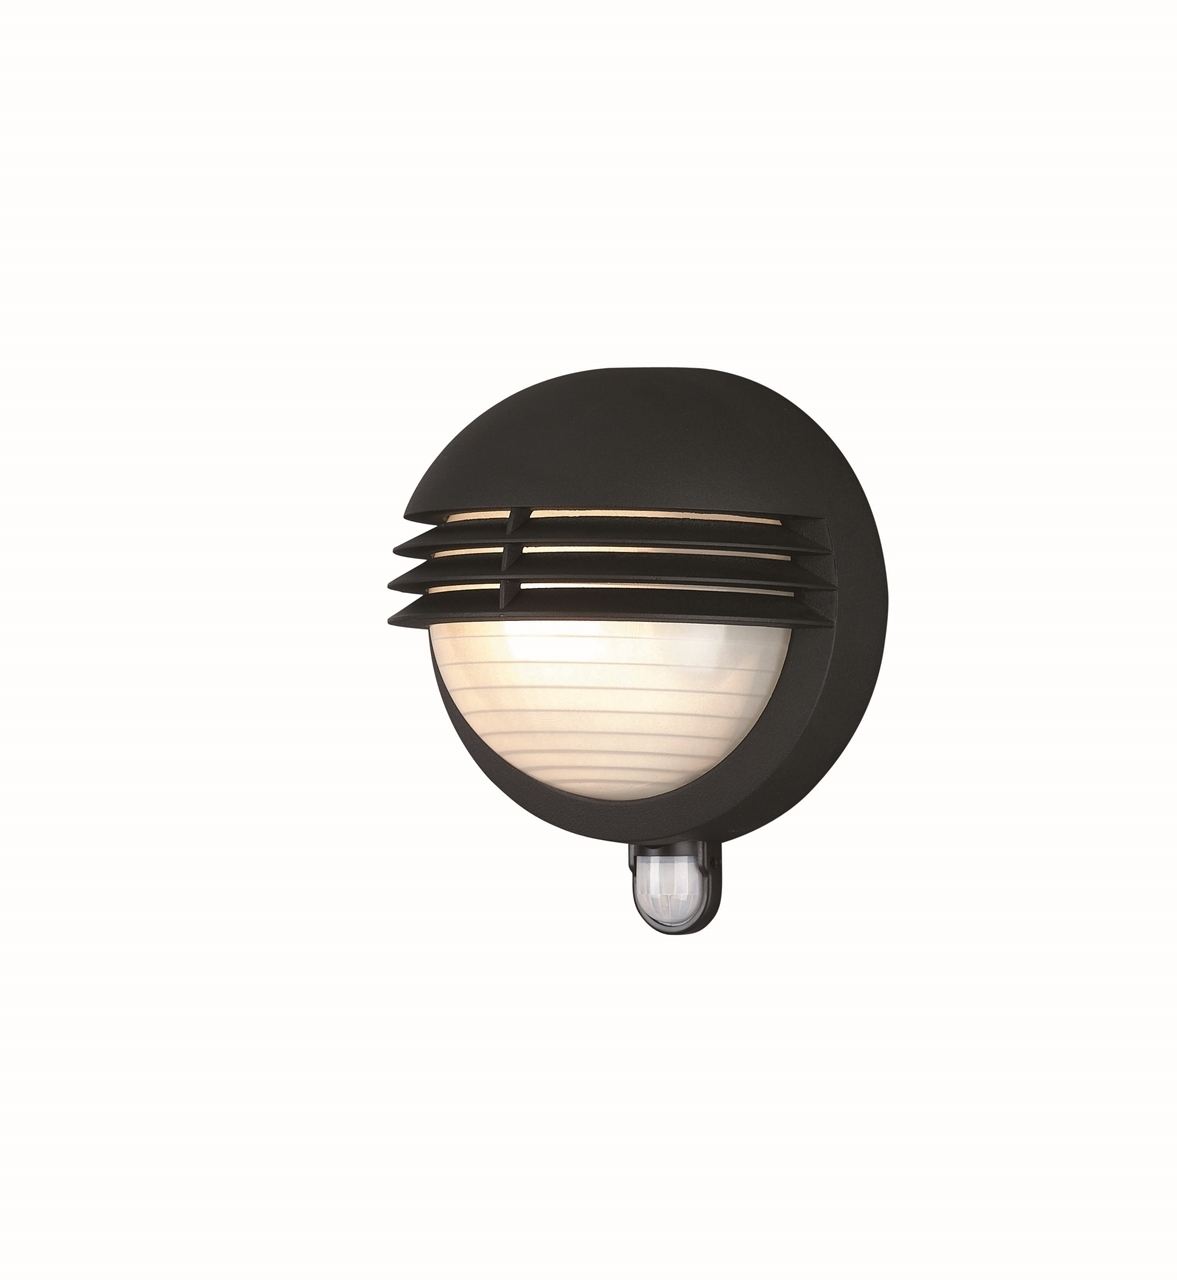 Outdoor Pir Wall Lights Throughout 2018 K Lighting Supplies – Indoor, Outdoor & Led Lighting Specialists (View 14 of 20)